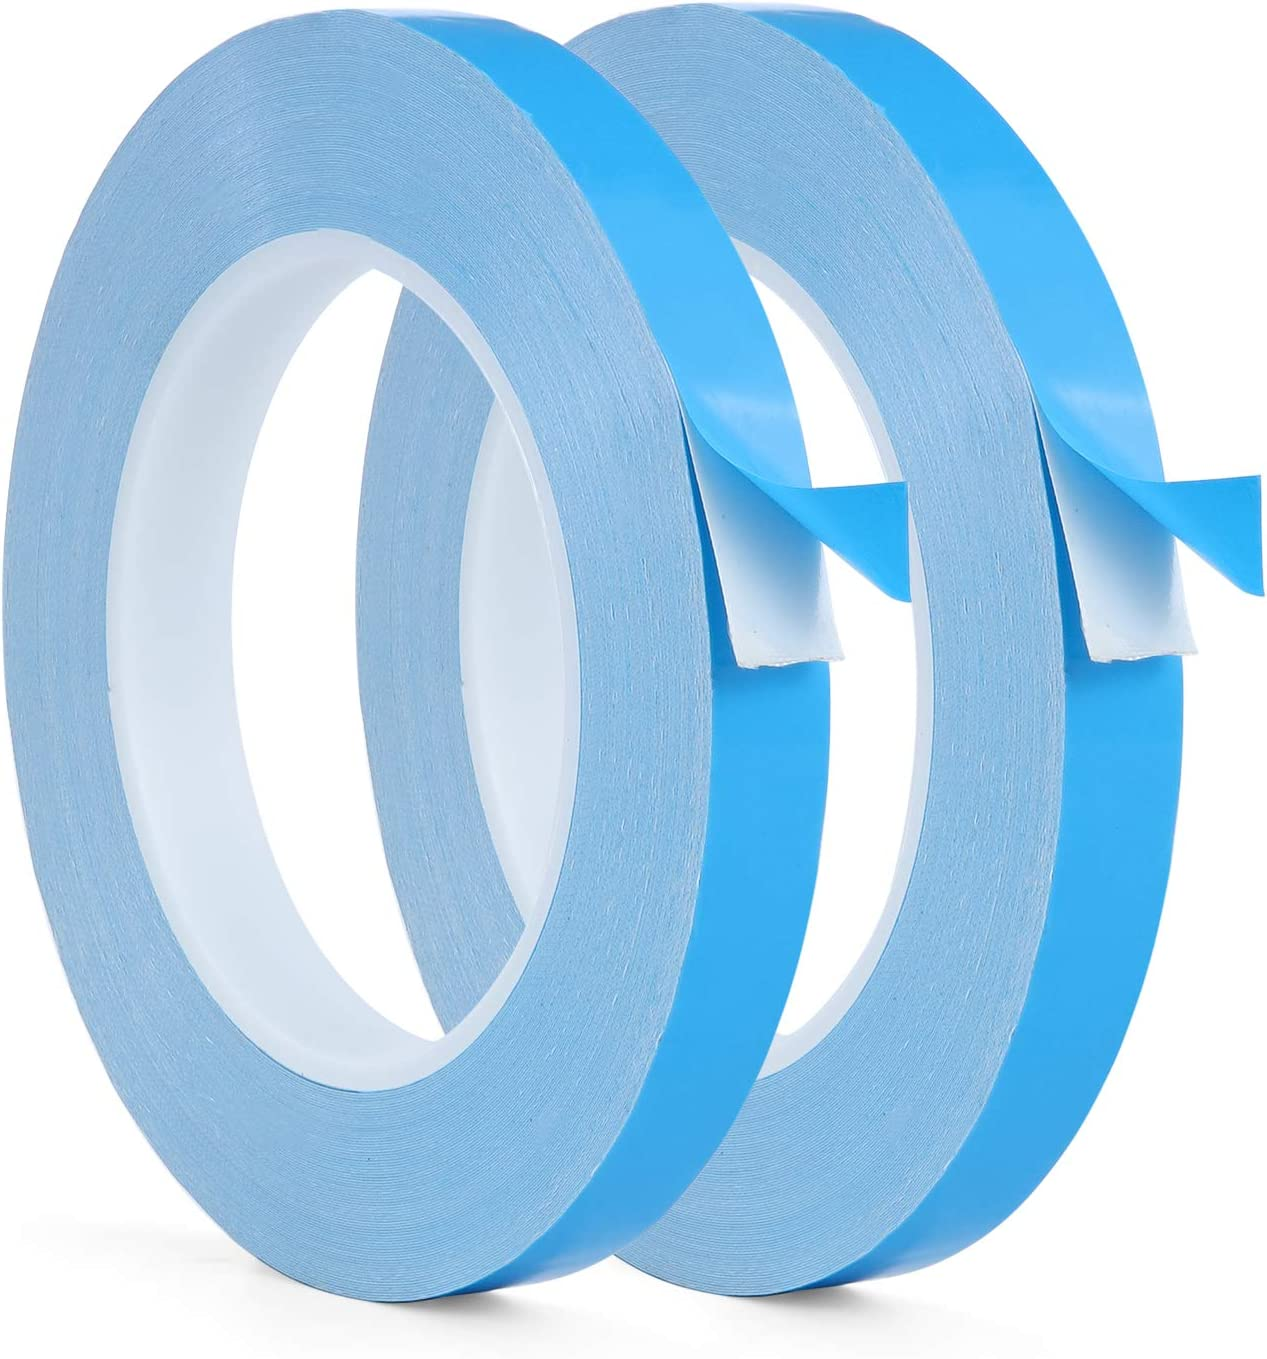 1 Roll,1 in x 82 ft Thermal Adhesive Tape,iVict High Performance Double Sided Thermally Conductive Tape Apply to Heatsinks LED Strips IC Chip Computer CPU GPU Modules